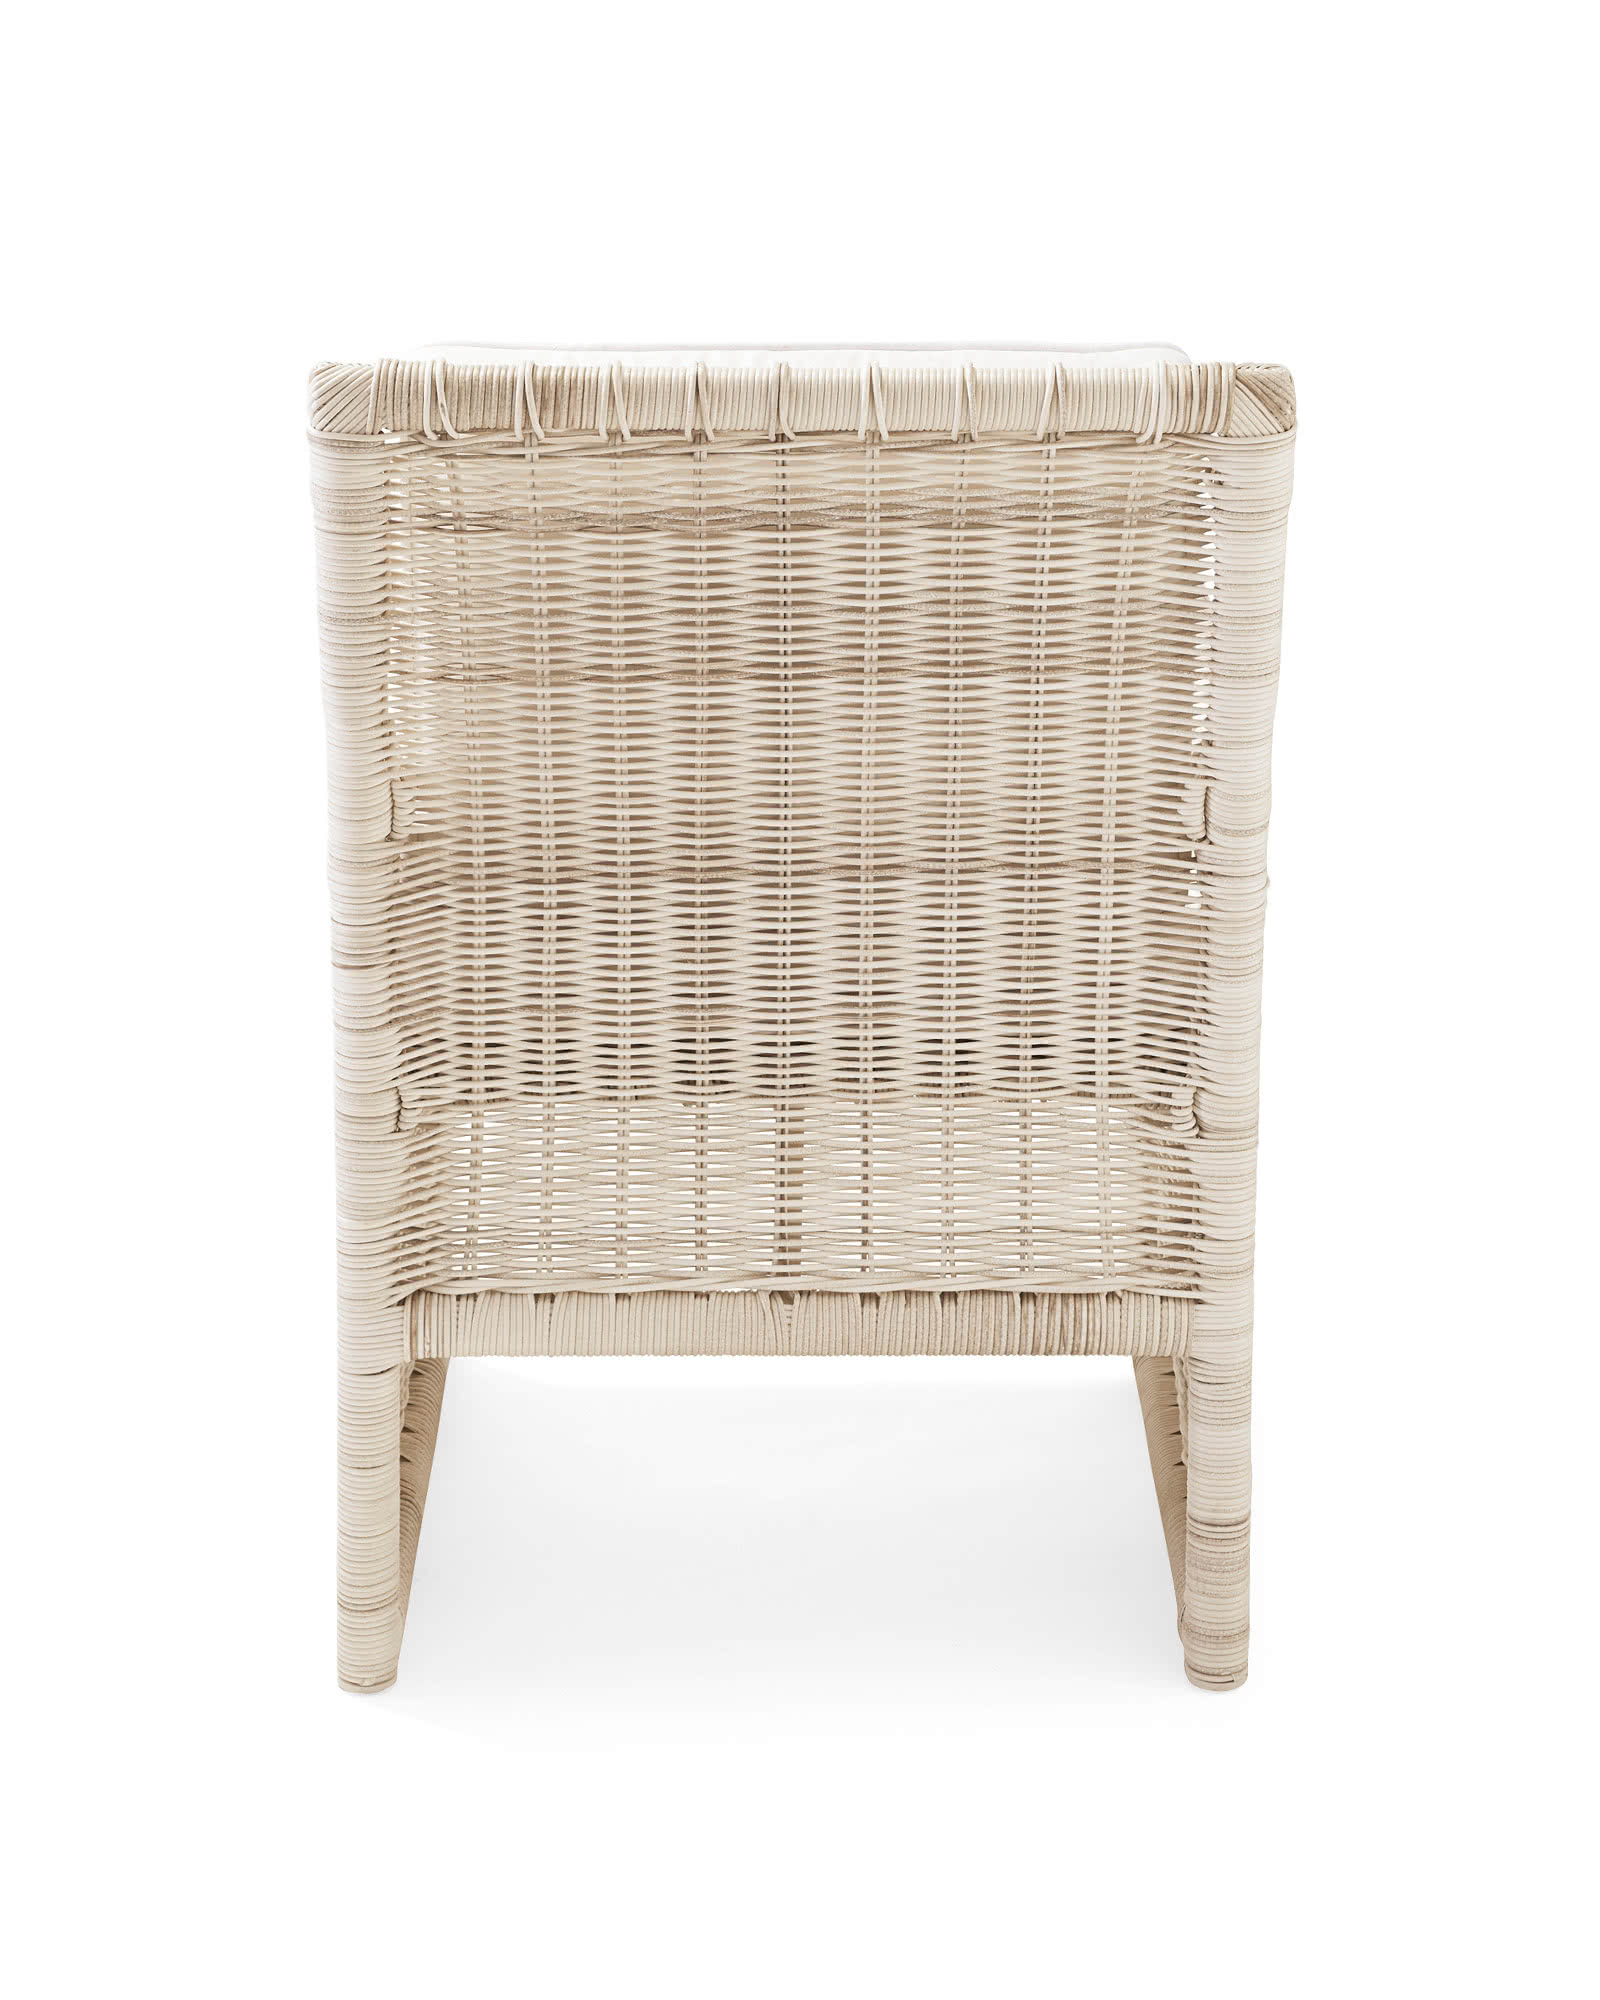 Pacifica Dining Chair with Cushion